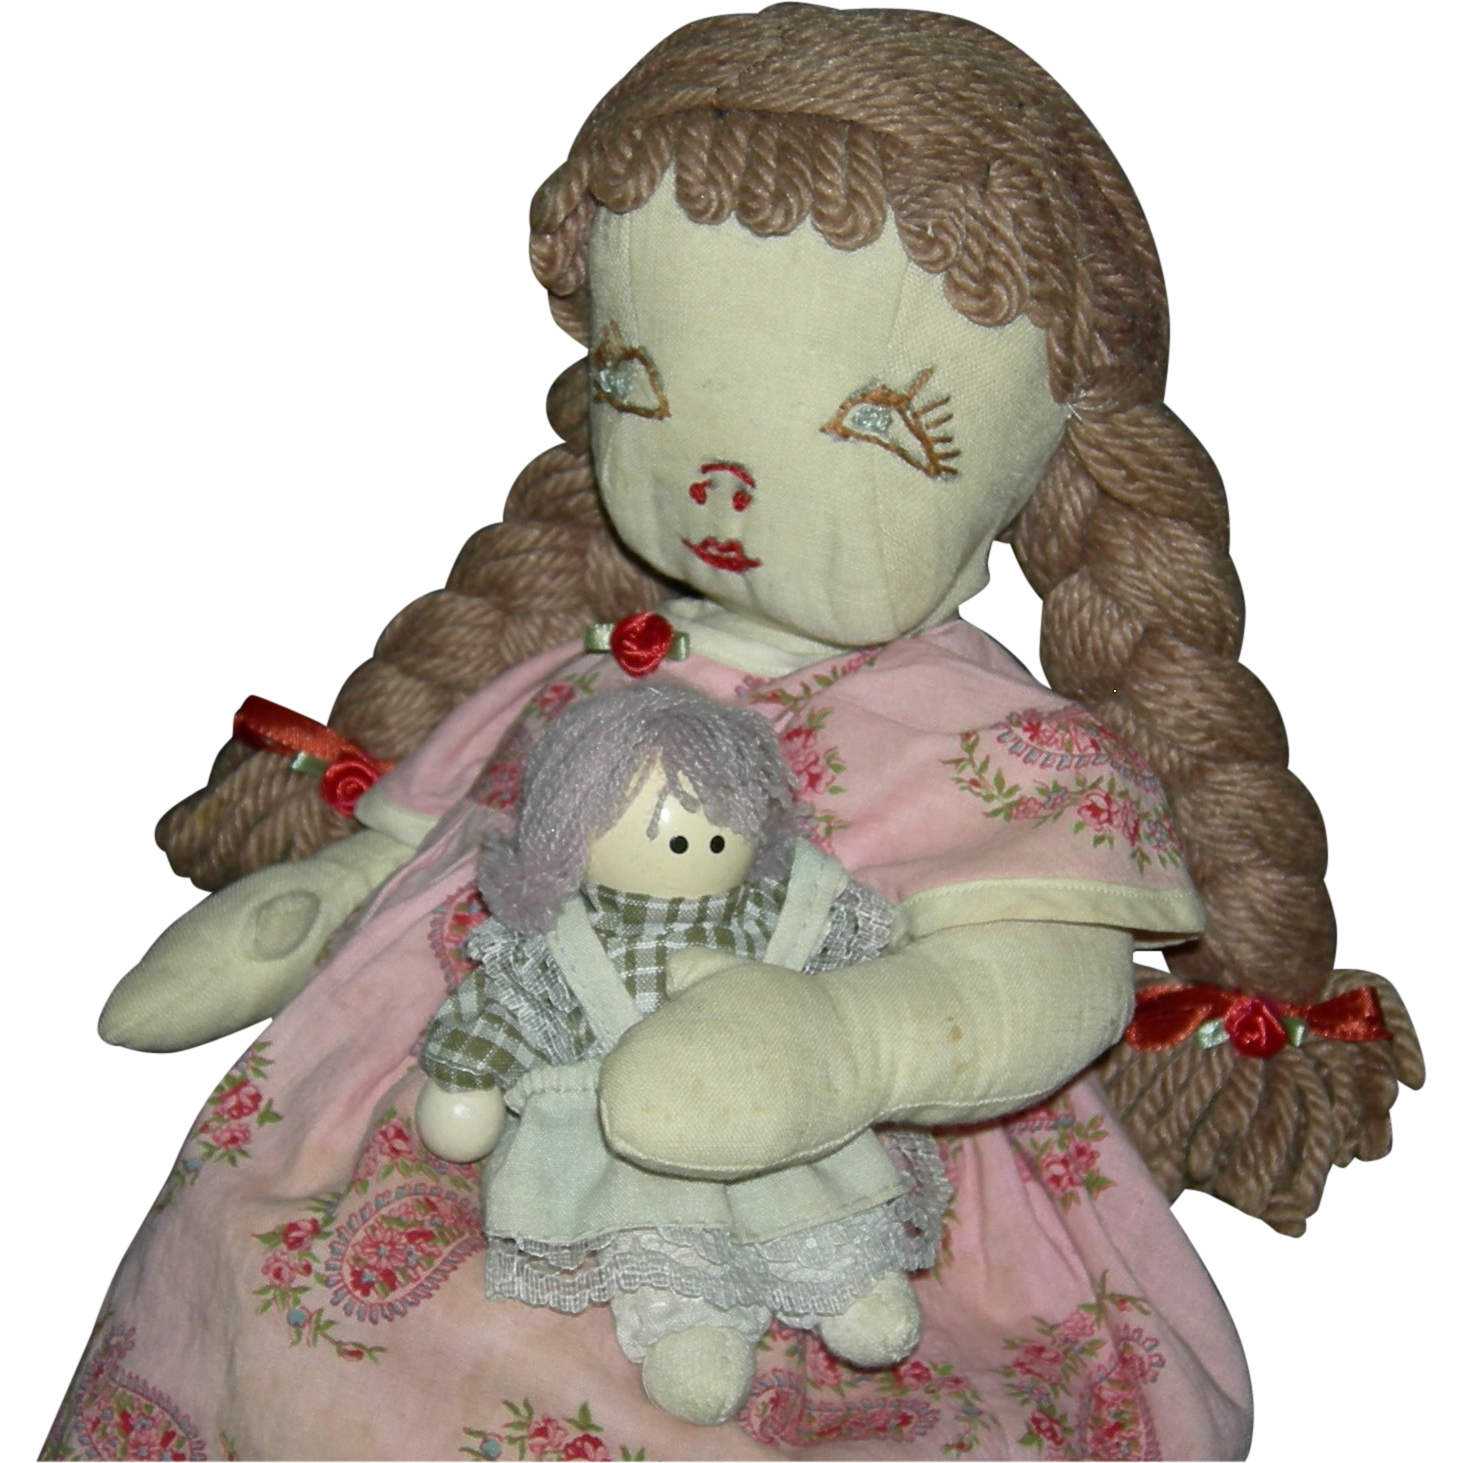 "Vintage - CLOTH RAG DOLL - Embroidered Face - 15"" - Yarn Hair - Pretty Dress!! - Much Loved!! - Edith Flack Pattern!!"